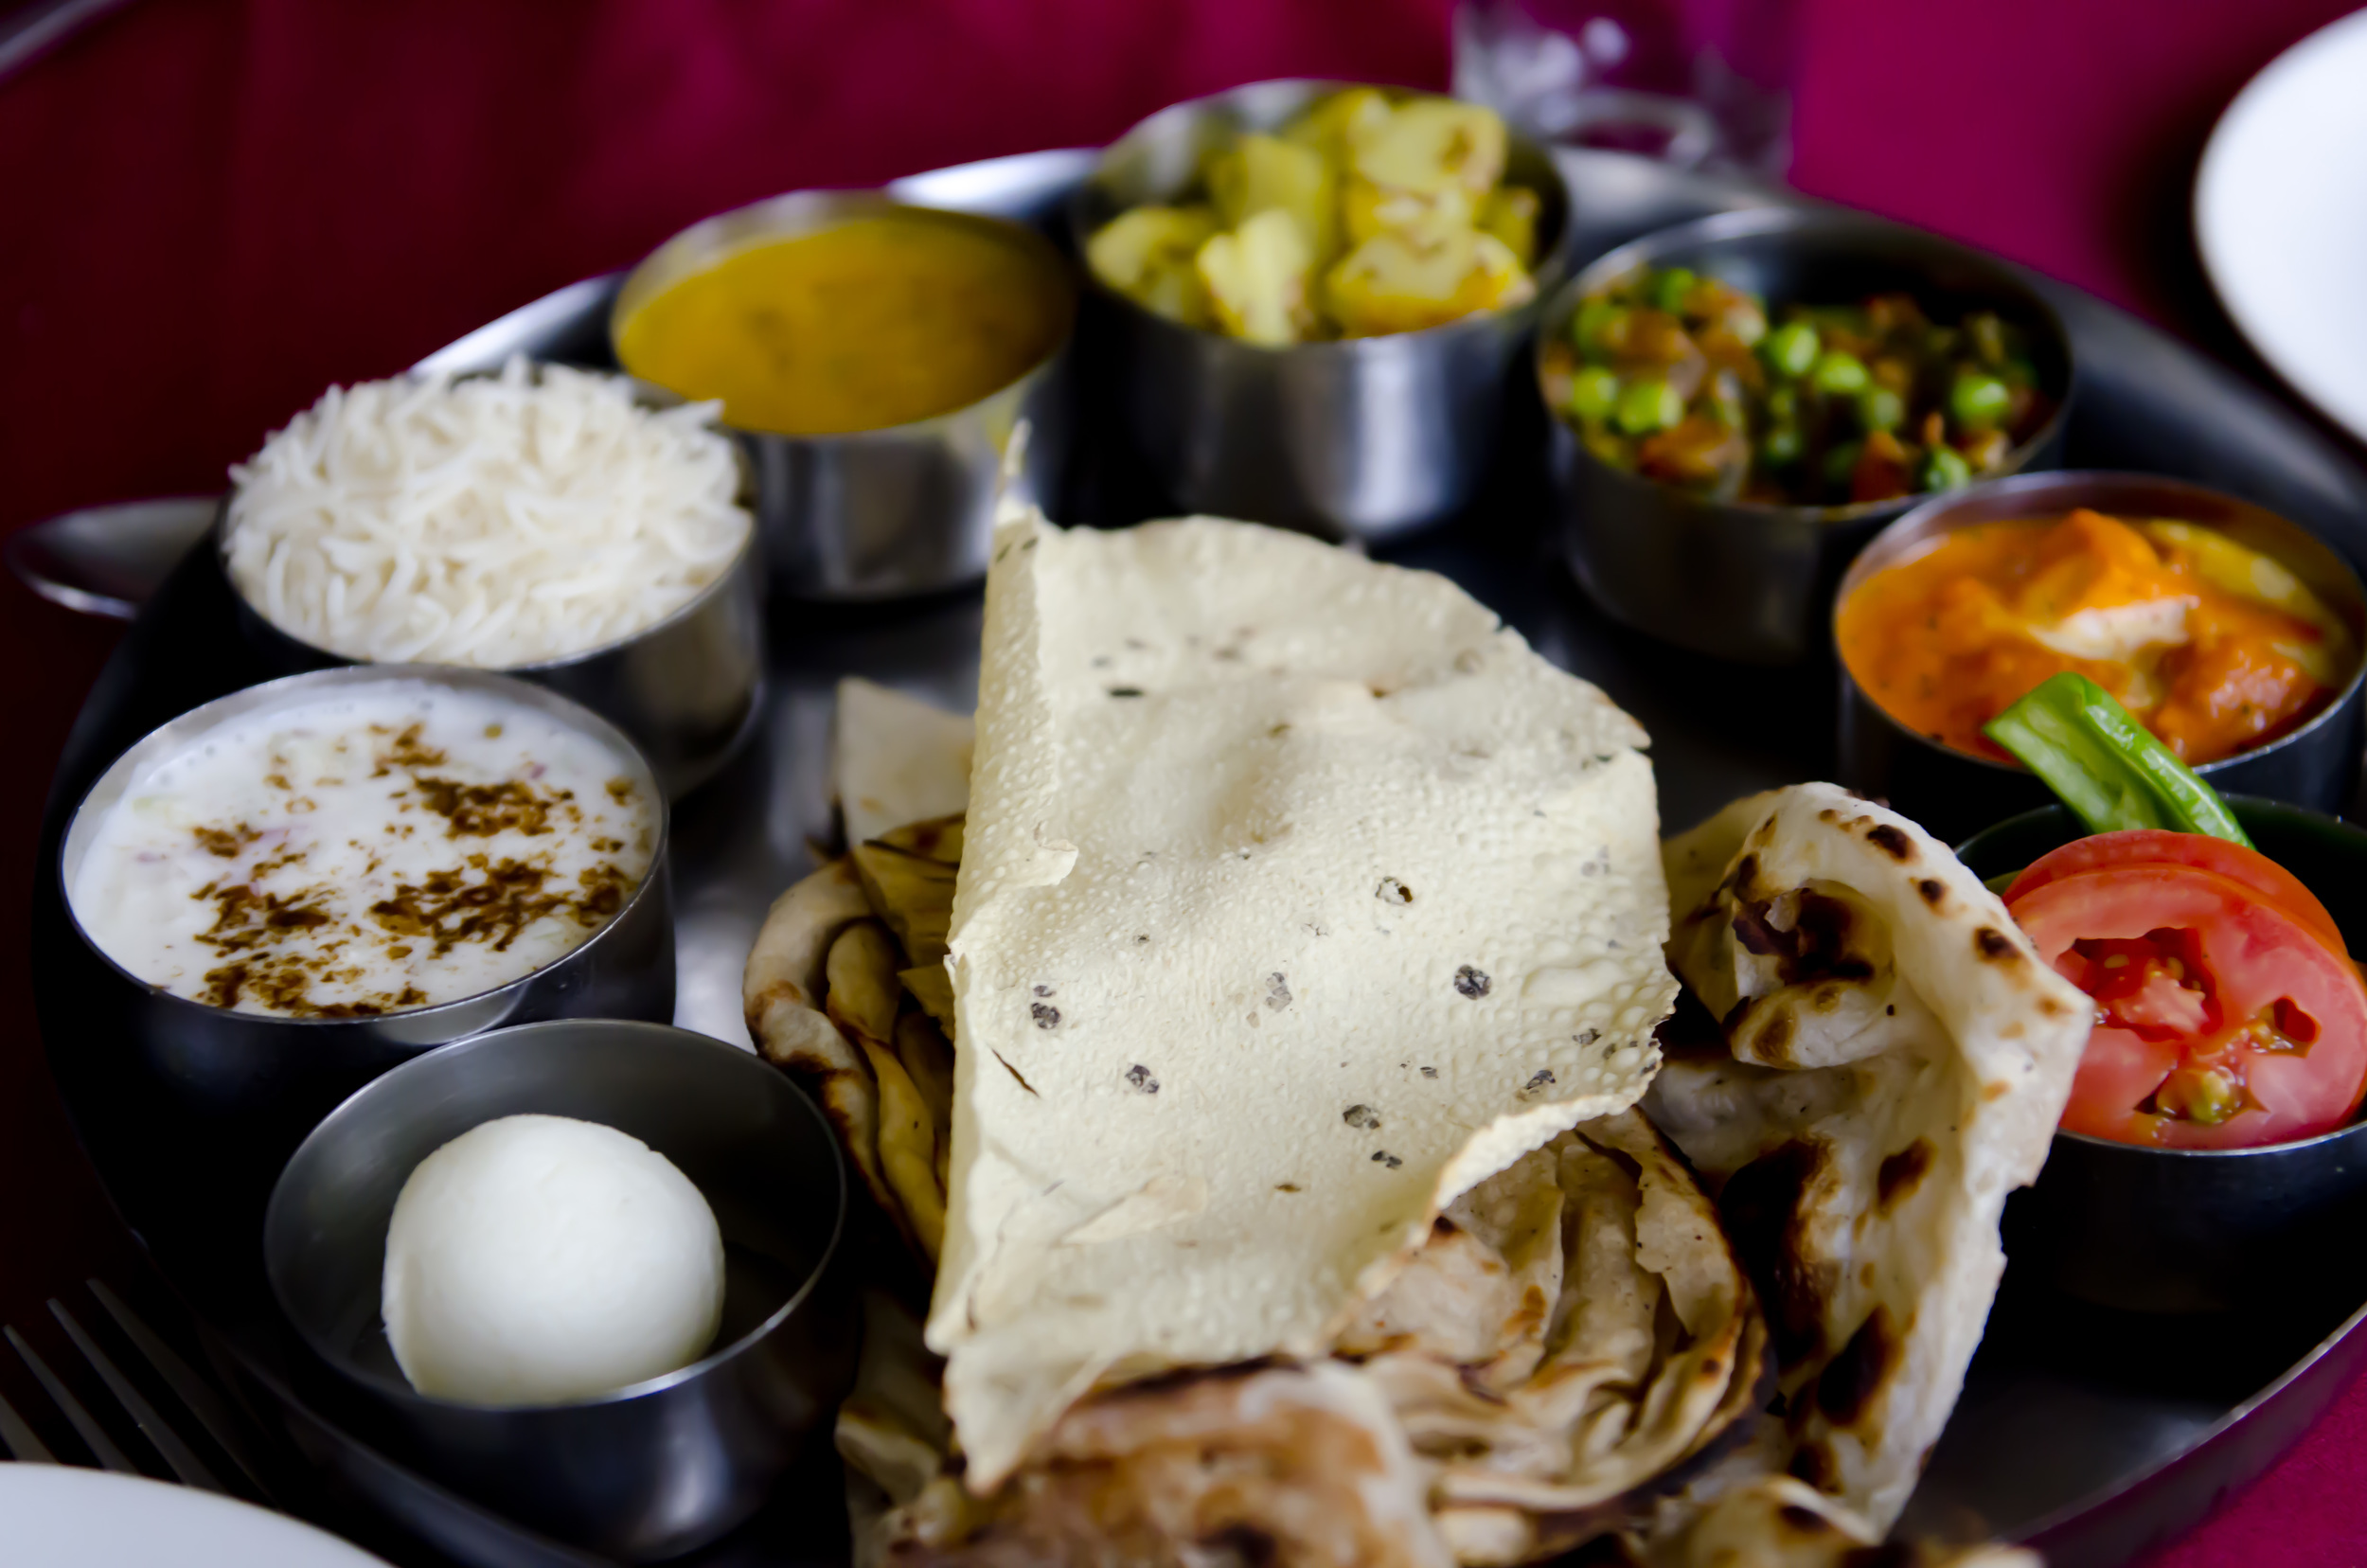 One of the lovely thalis I ate while in India